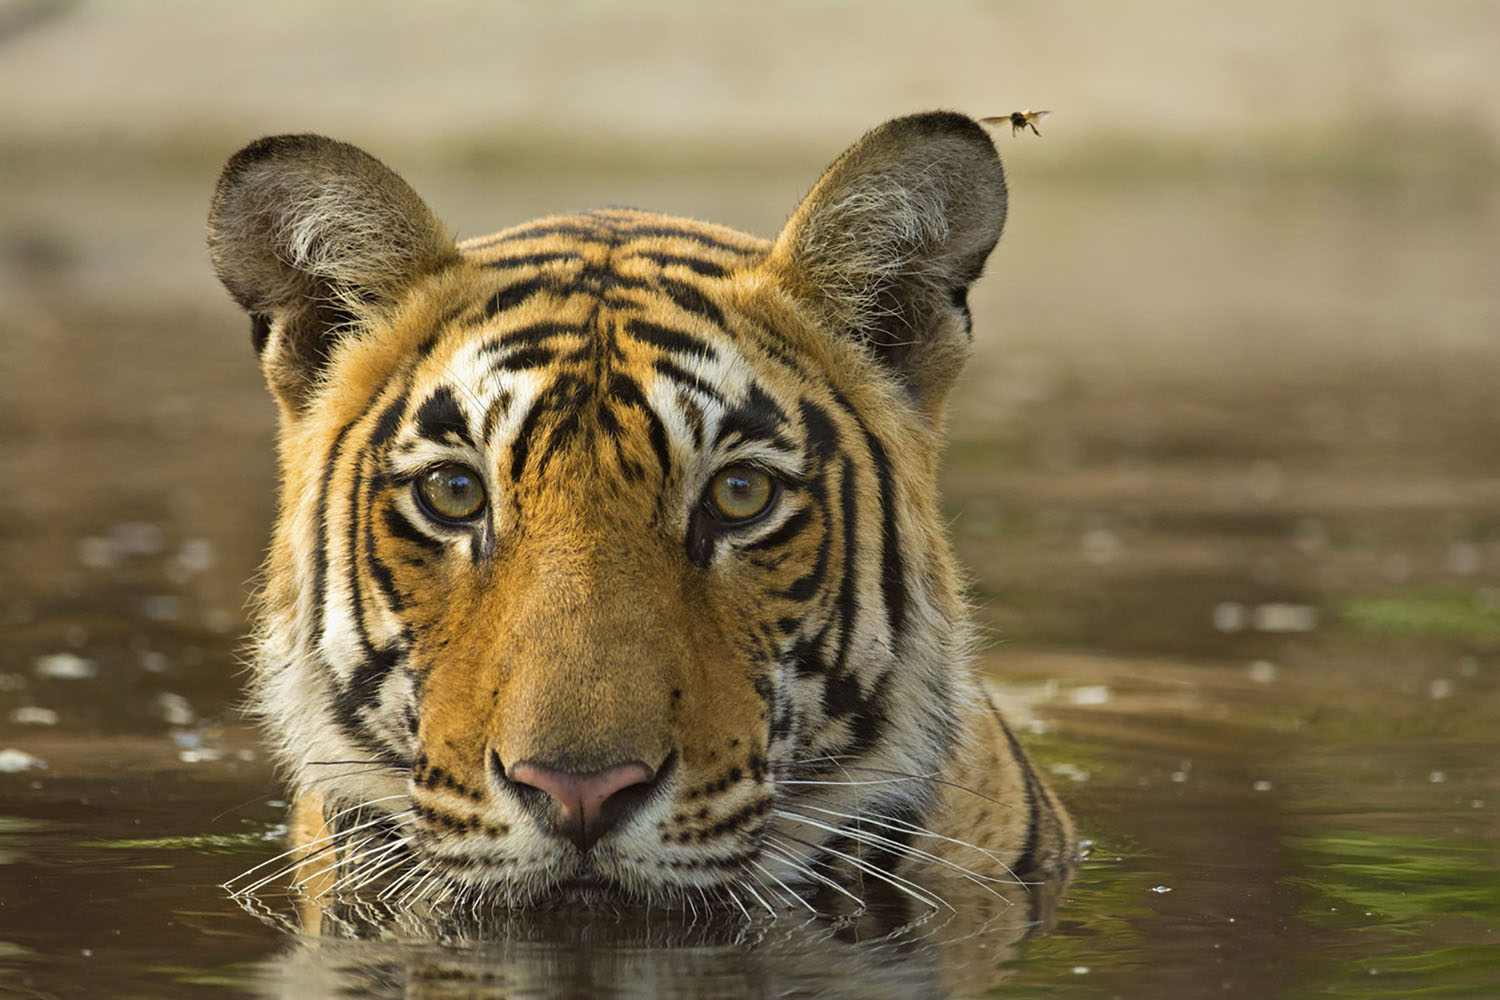 Wild tiger in a pool of water in Ranthambore National Park